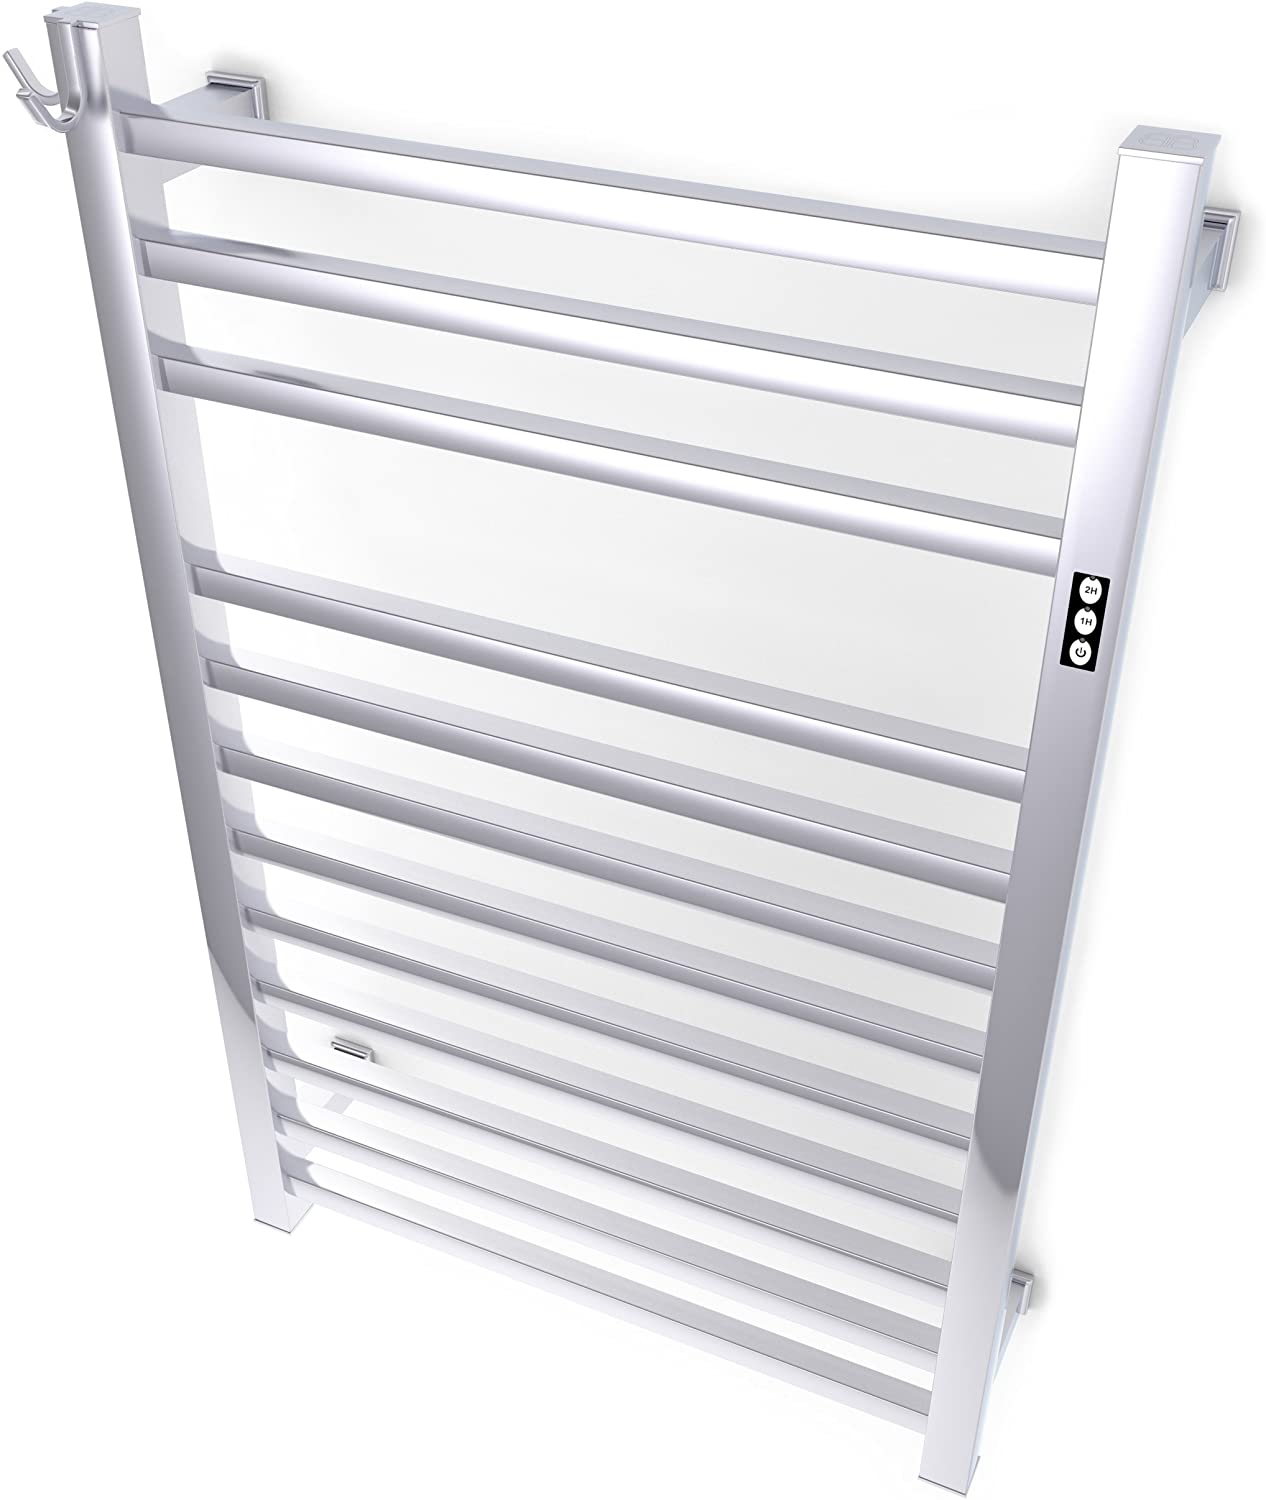 Brandon Basics Wall Mounted Electric Towel Warmer with Built-in Timer and Hardwired and Plug in Options, Stainless Steel - Brushed